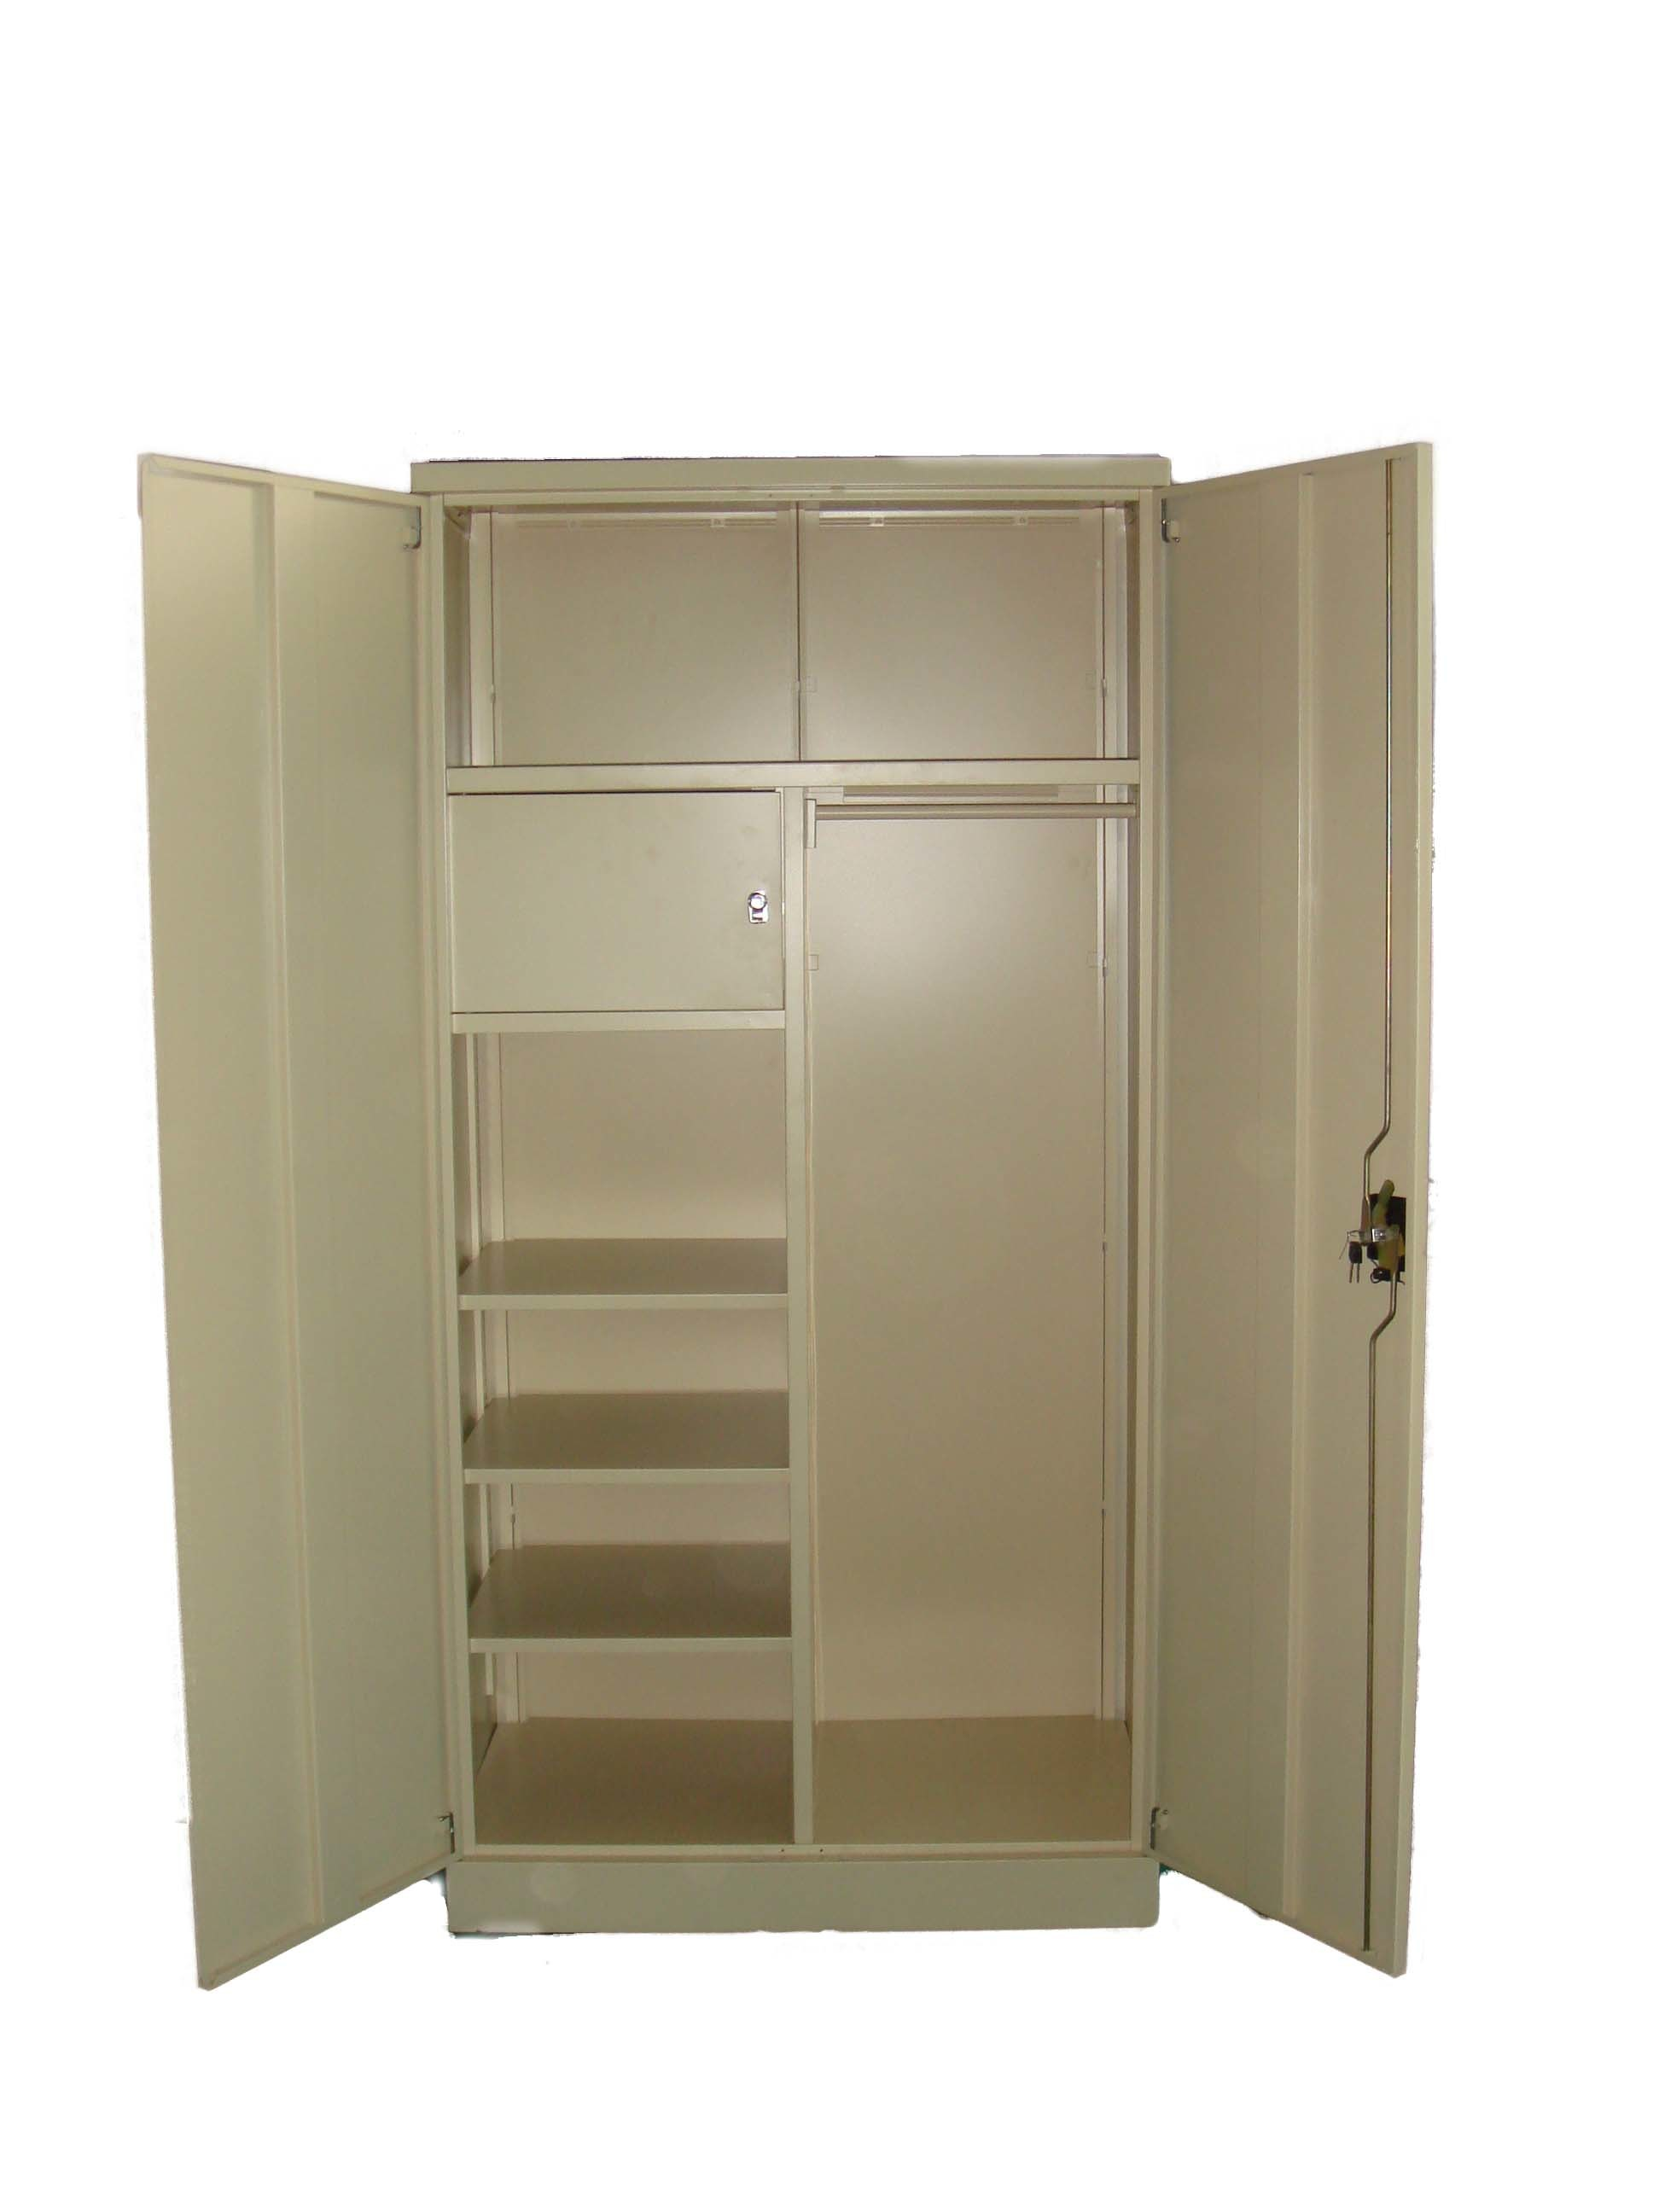 Storage cabinets steel storage cabinets for Cupboards and cabinets